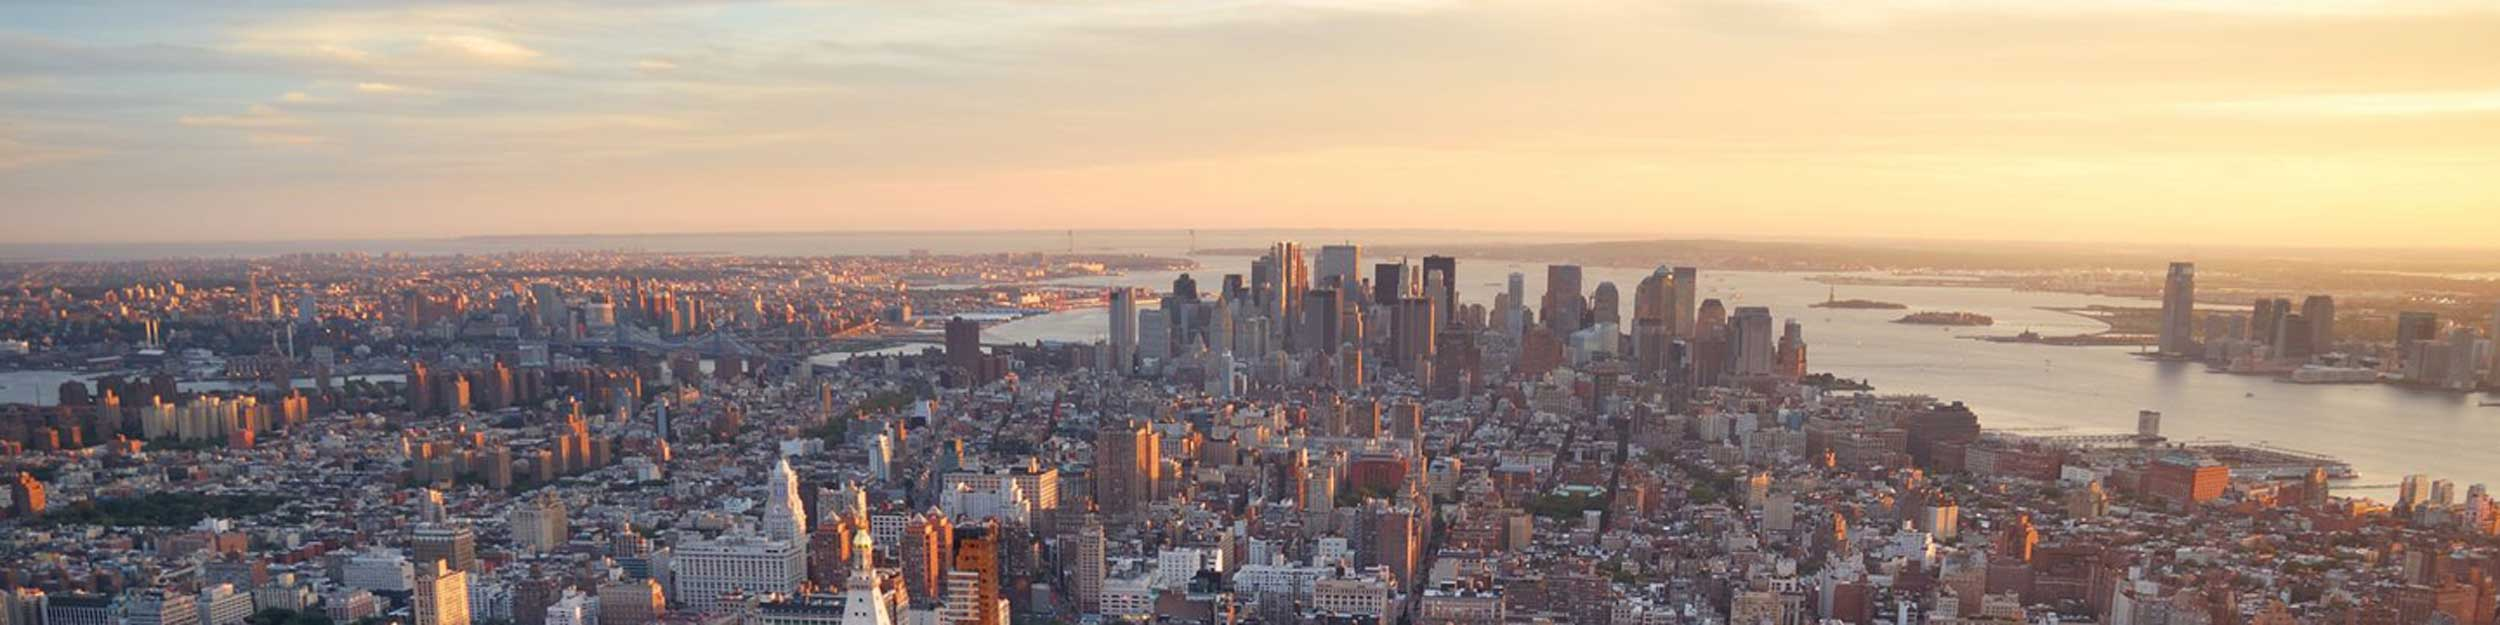 NYC-dawn-full-wdth-web